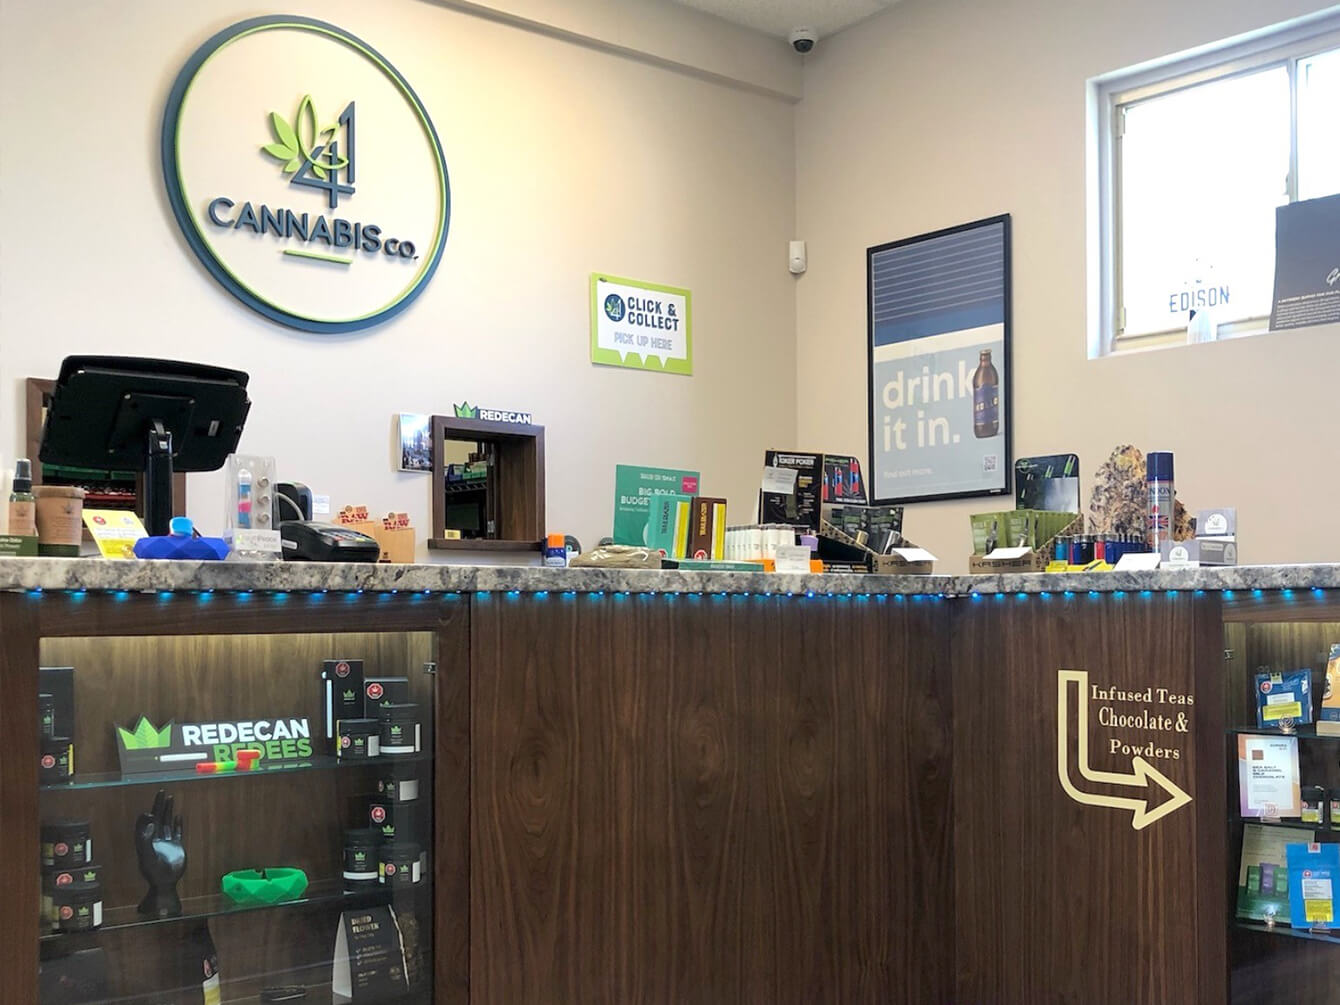 41 Cannabis Co., Northbrook, Ont.